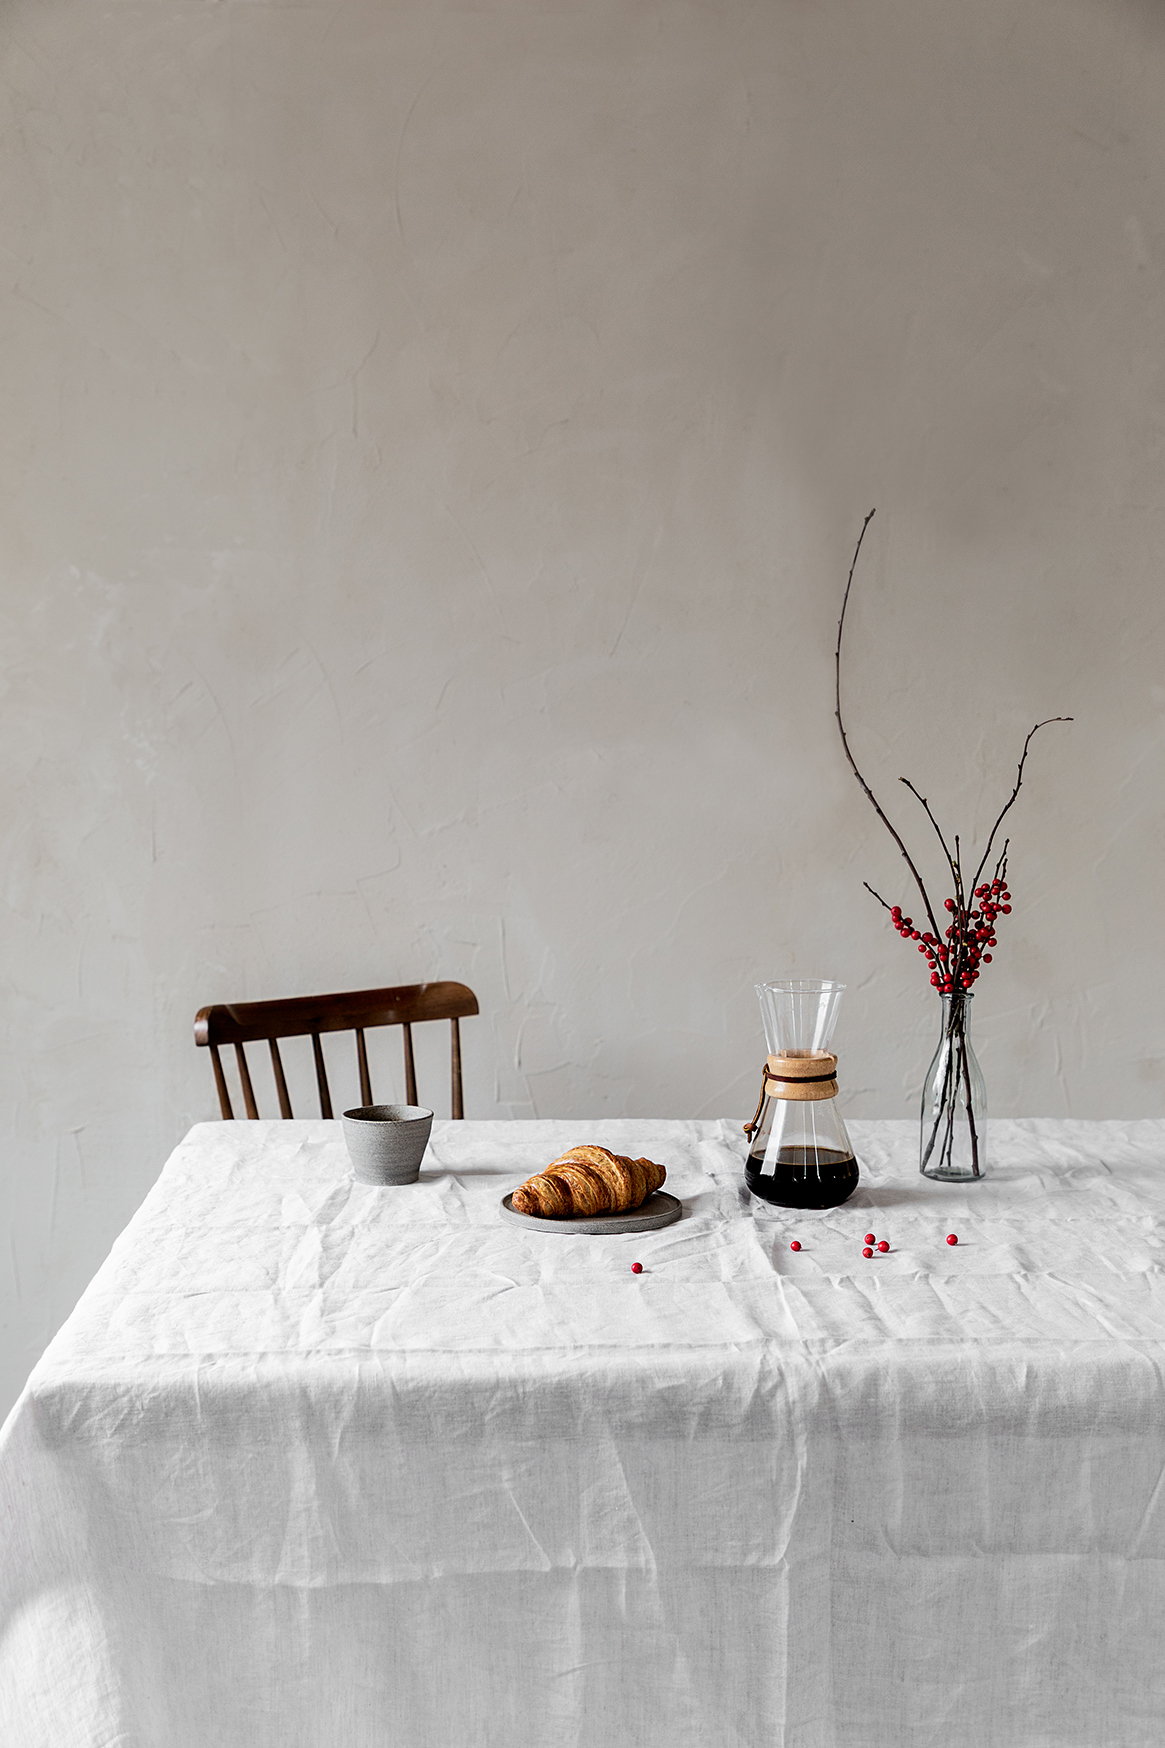 Copy of slow drip coffee and croissant on the table